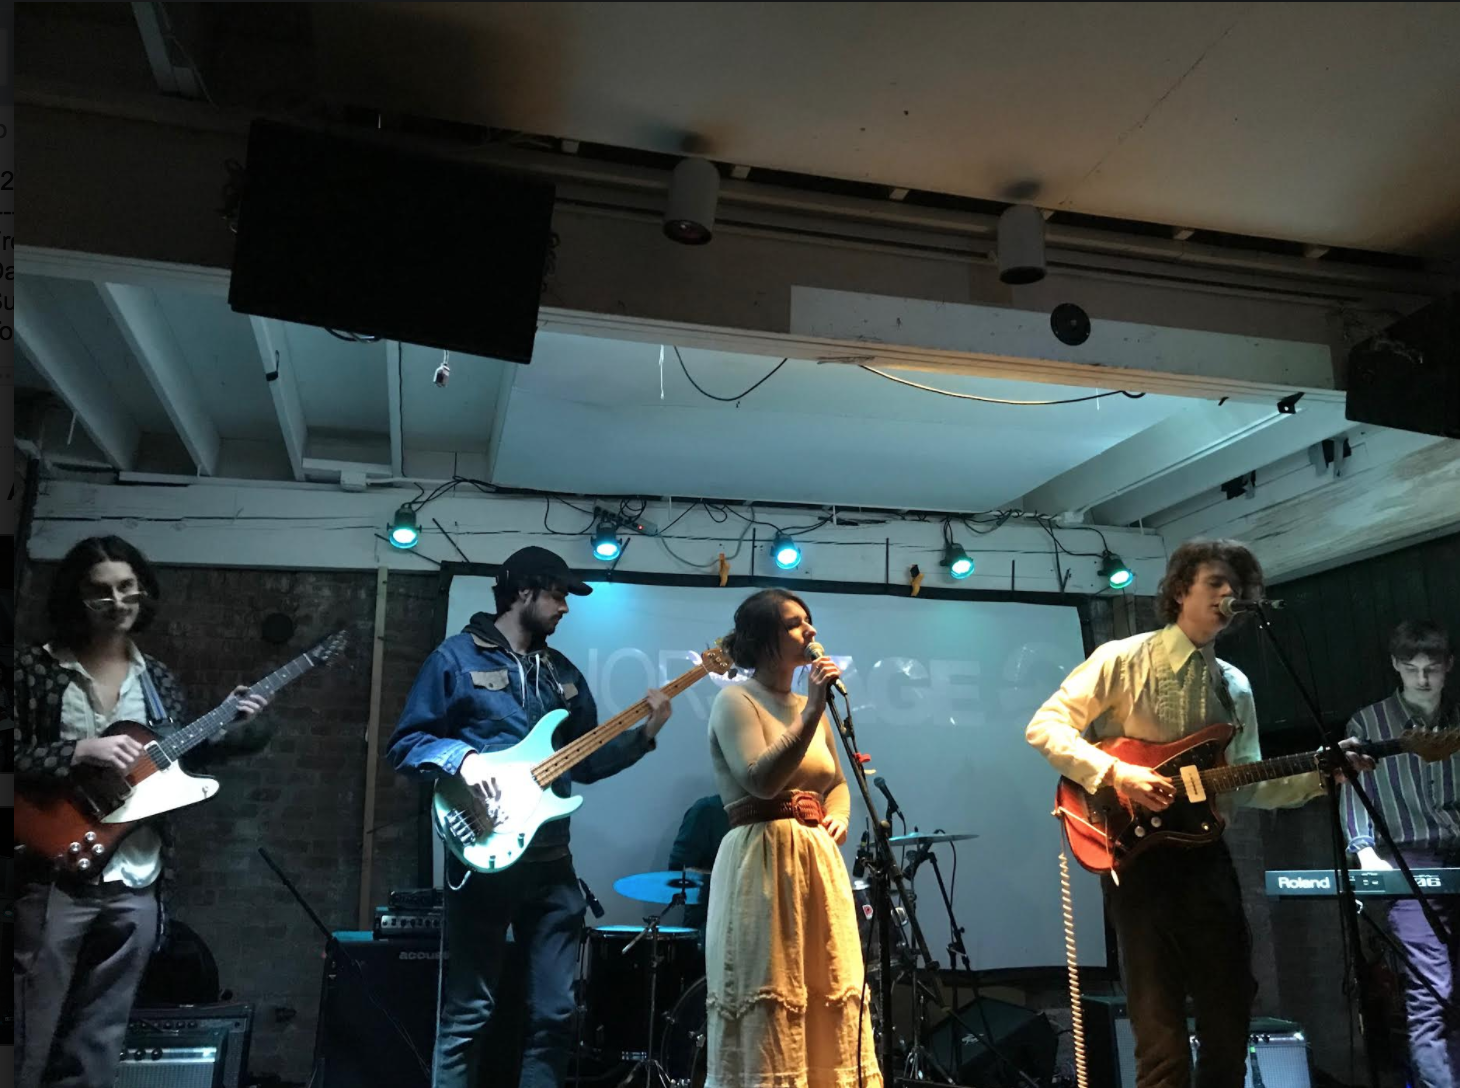 Gallatin junior Alex Carr performed with his band at Sunnyvale in Brooklyn last Saturday.